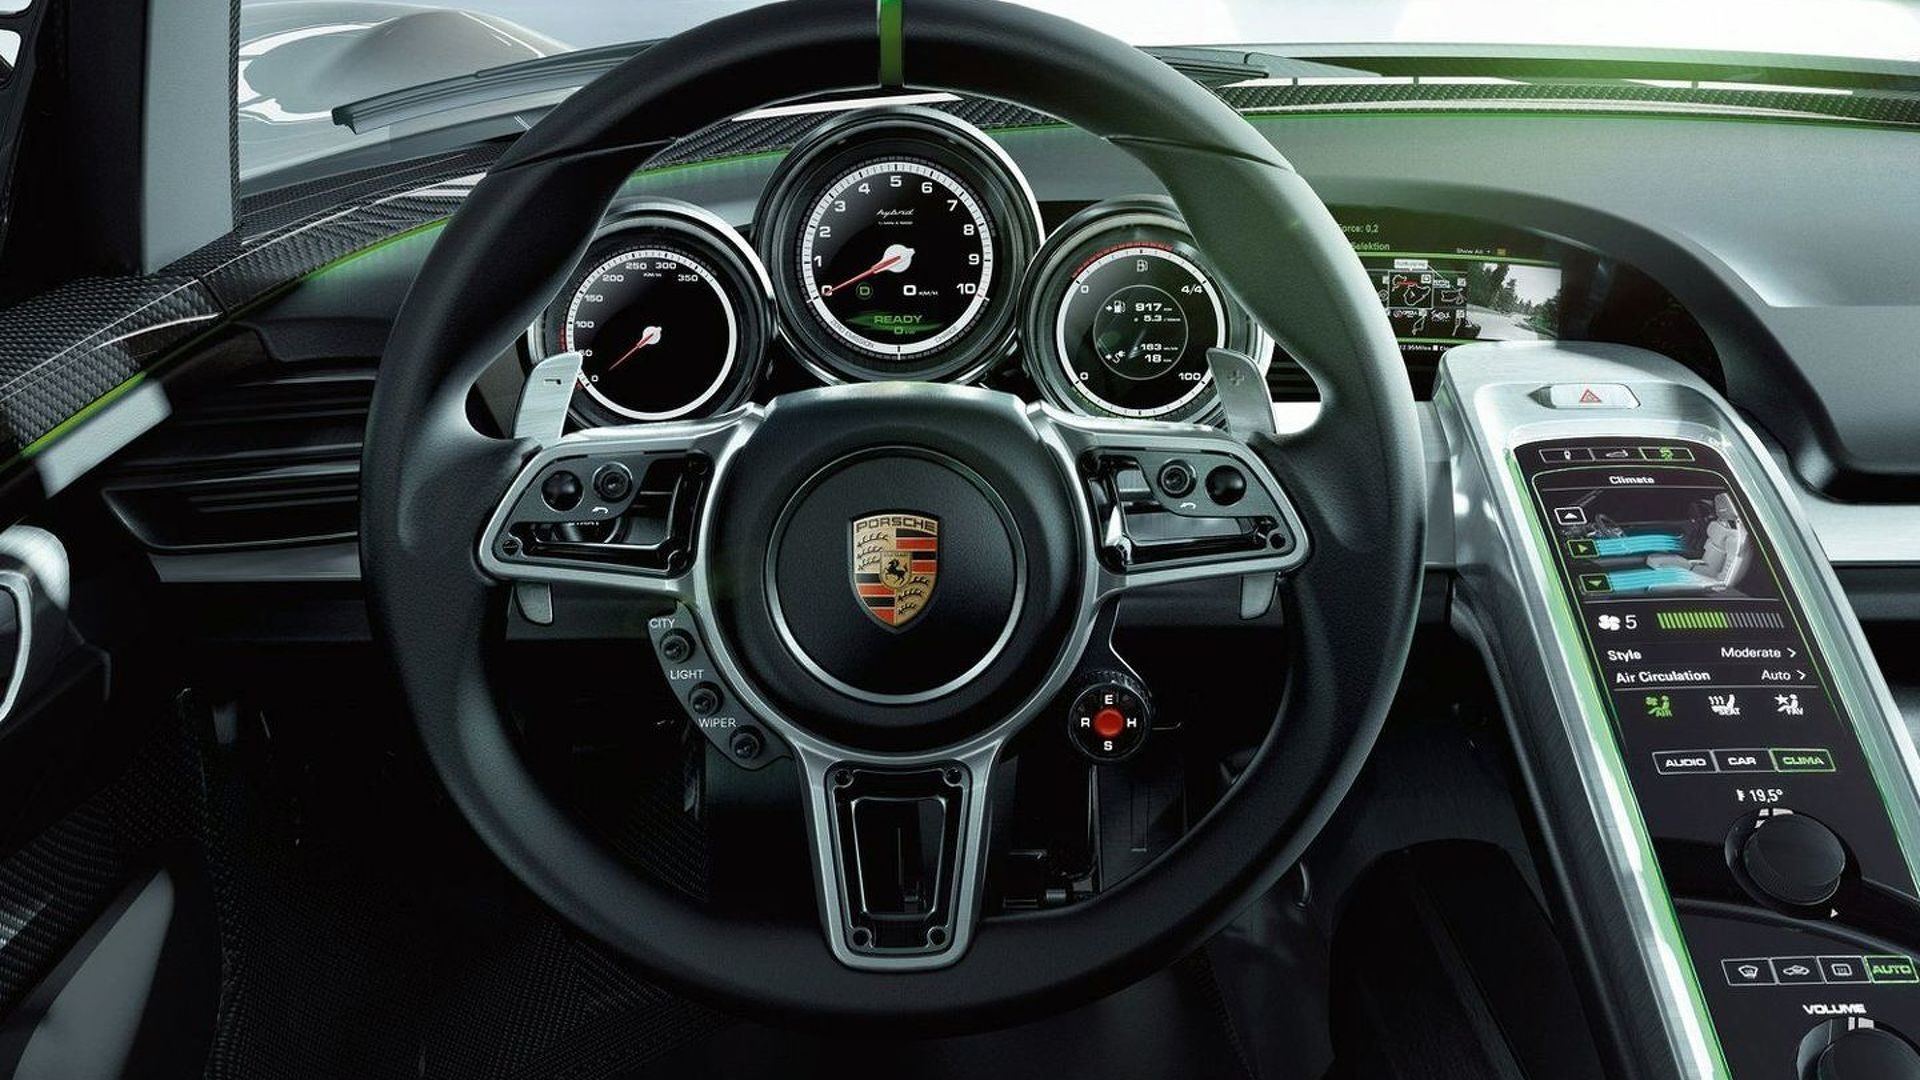 Porsche 918 Spyder in demand with 900 potential customers, production considered